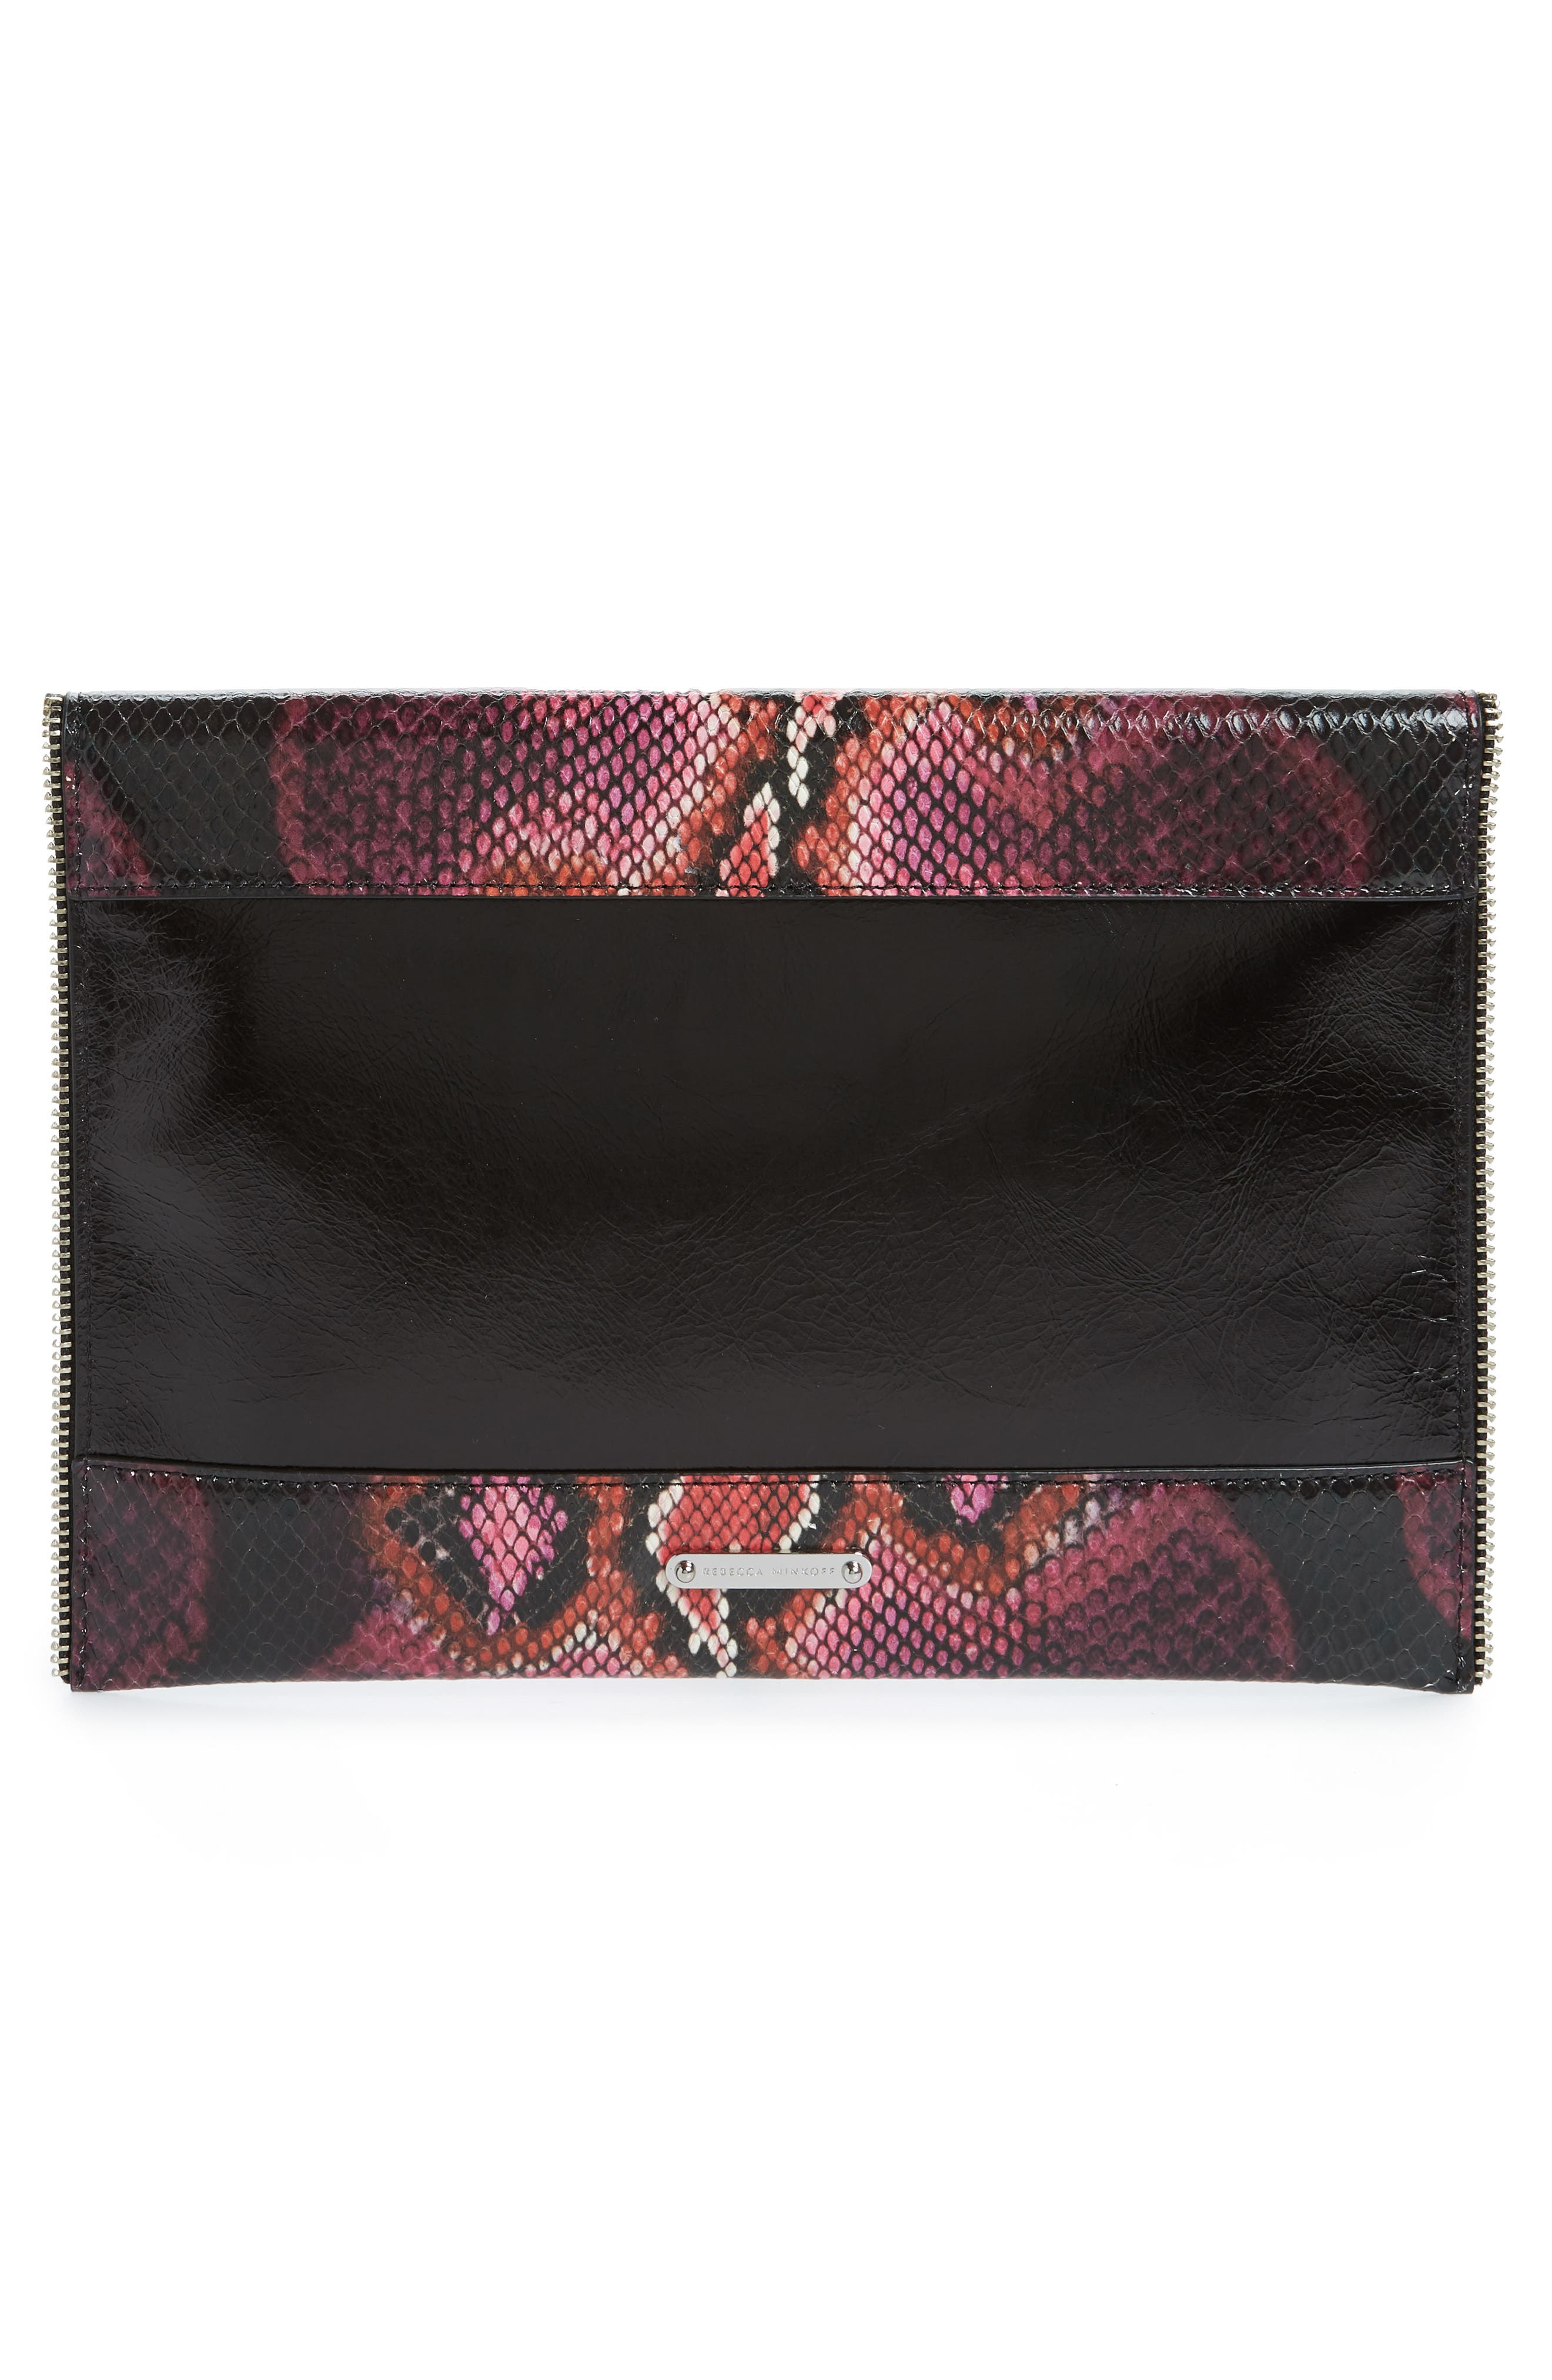 REBECCA MINKOFF,                             Leo Snake Embossed Leather Clutch,                             Alternate thumbnail 3, color,                             PINK MULTI